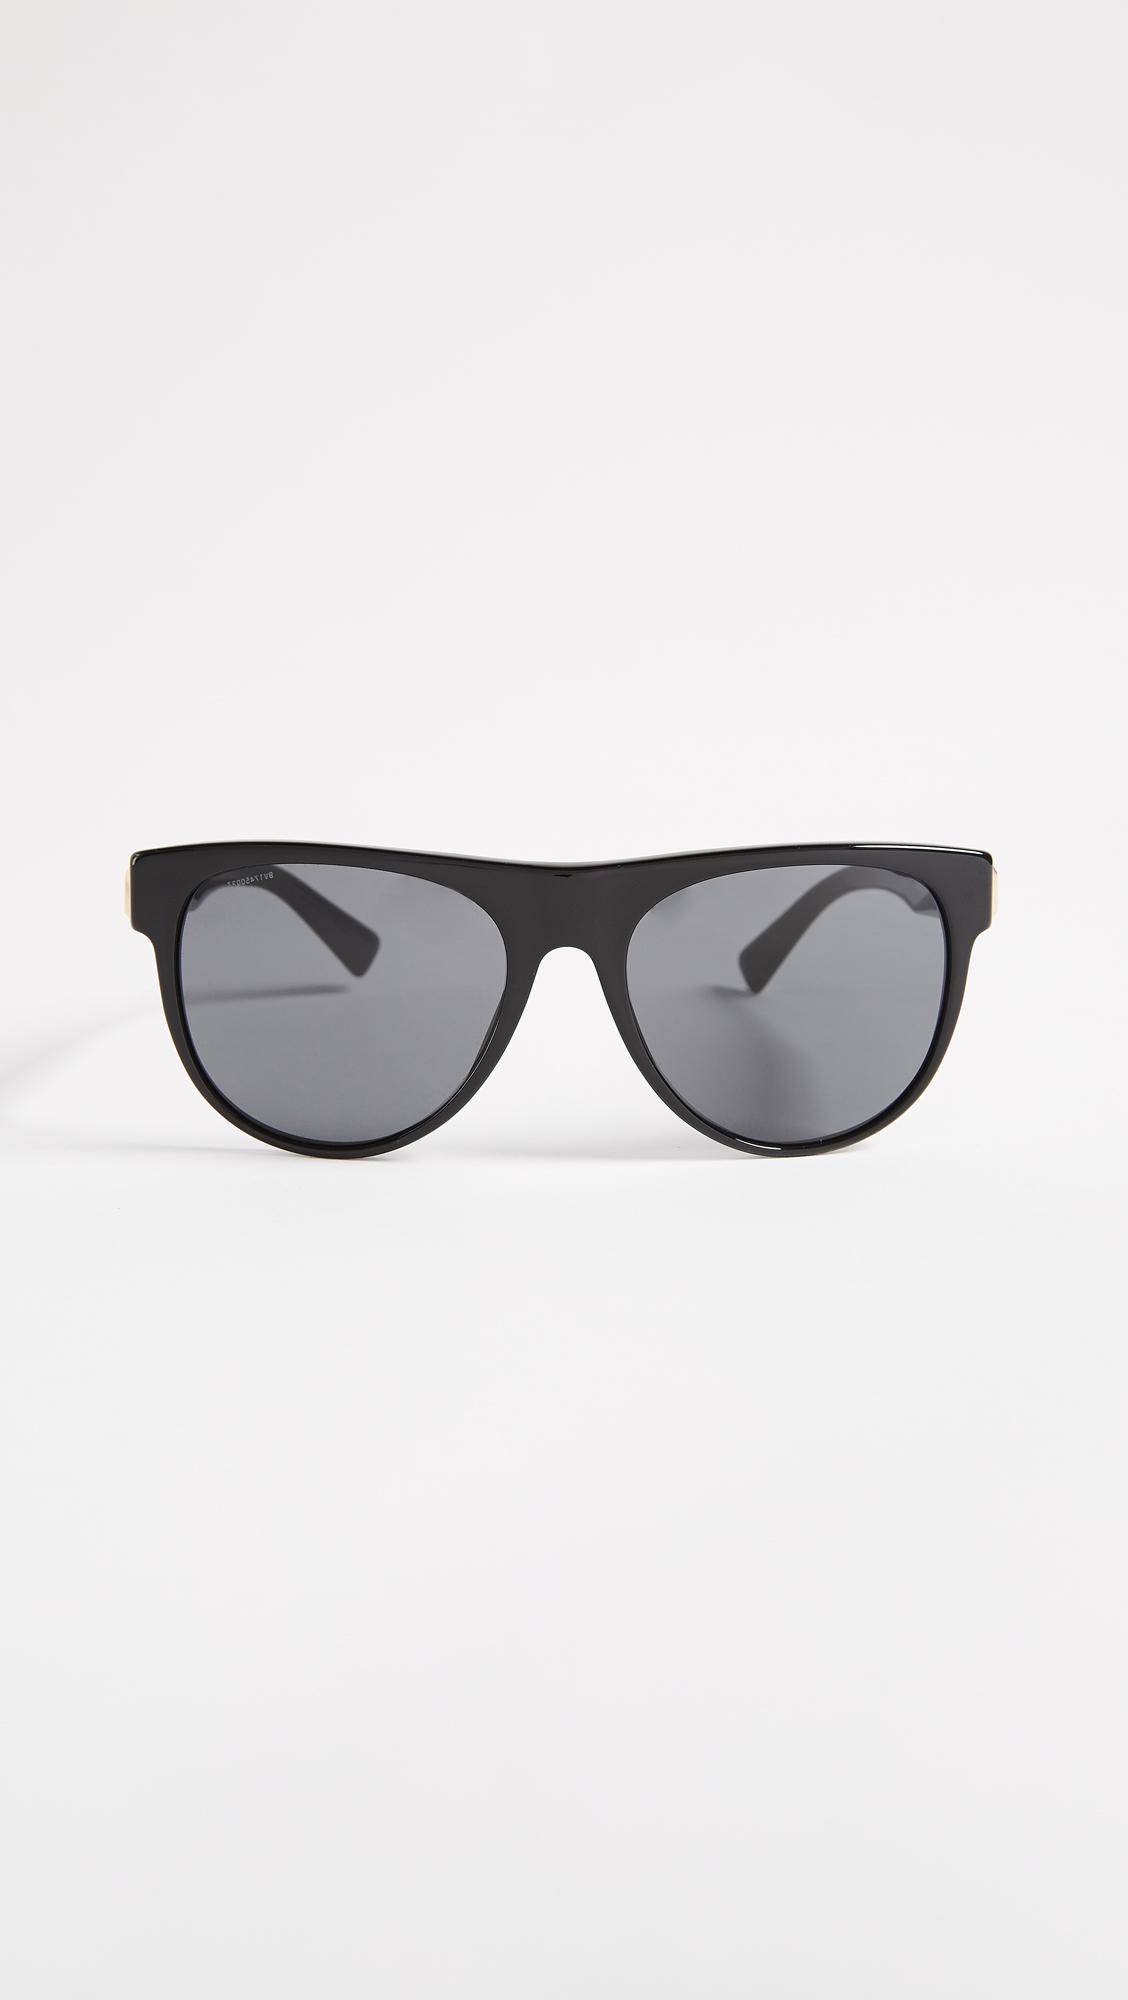 760806cffe94 Versace Rock Icon Flat Lens Sunglasses in Black - Lyst